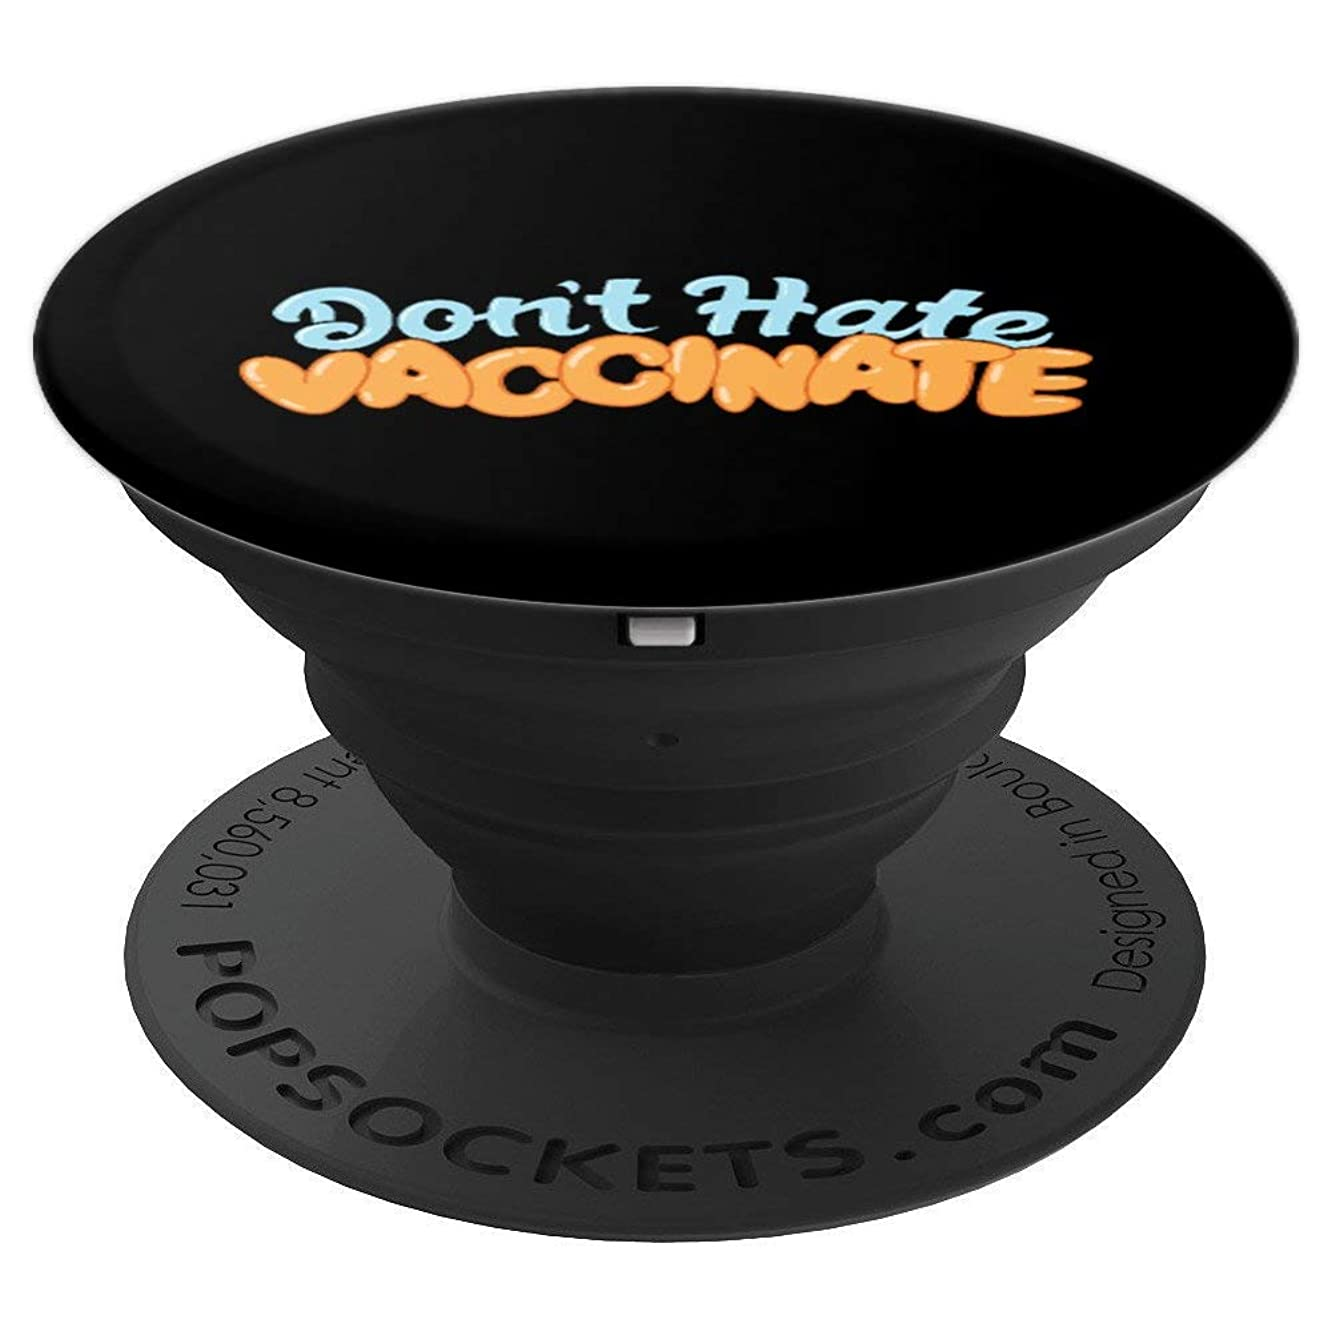 Pro Vaccination Don't Hate Vaccinate Medicine Nurse Doctor - PopSockets Grip and Stand for Phones and Tablets